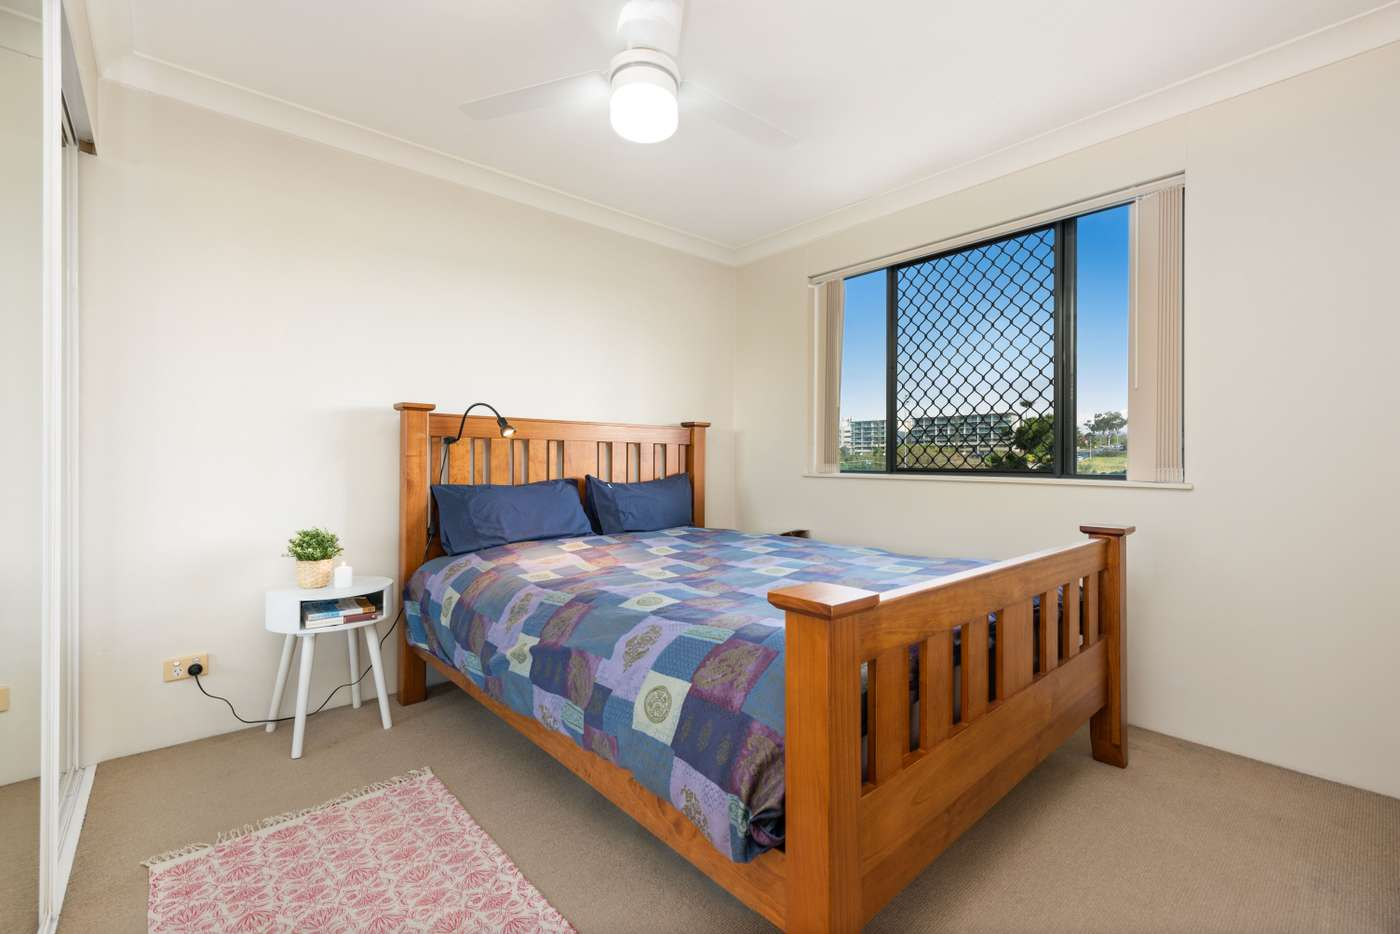 Fifth view of Homely apartment listing, 24/300 Sir Fred Schonell Drive, St Lucia QLD 4067